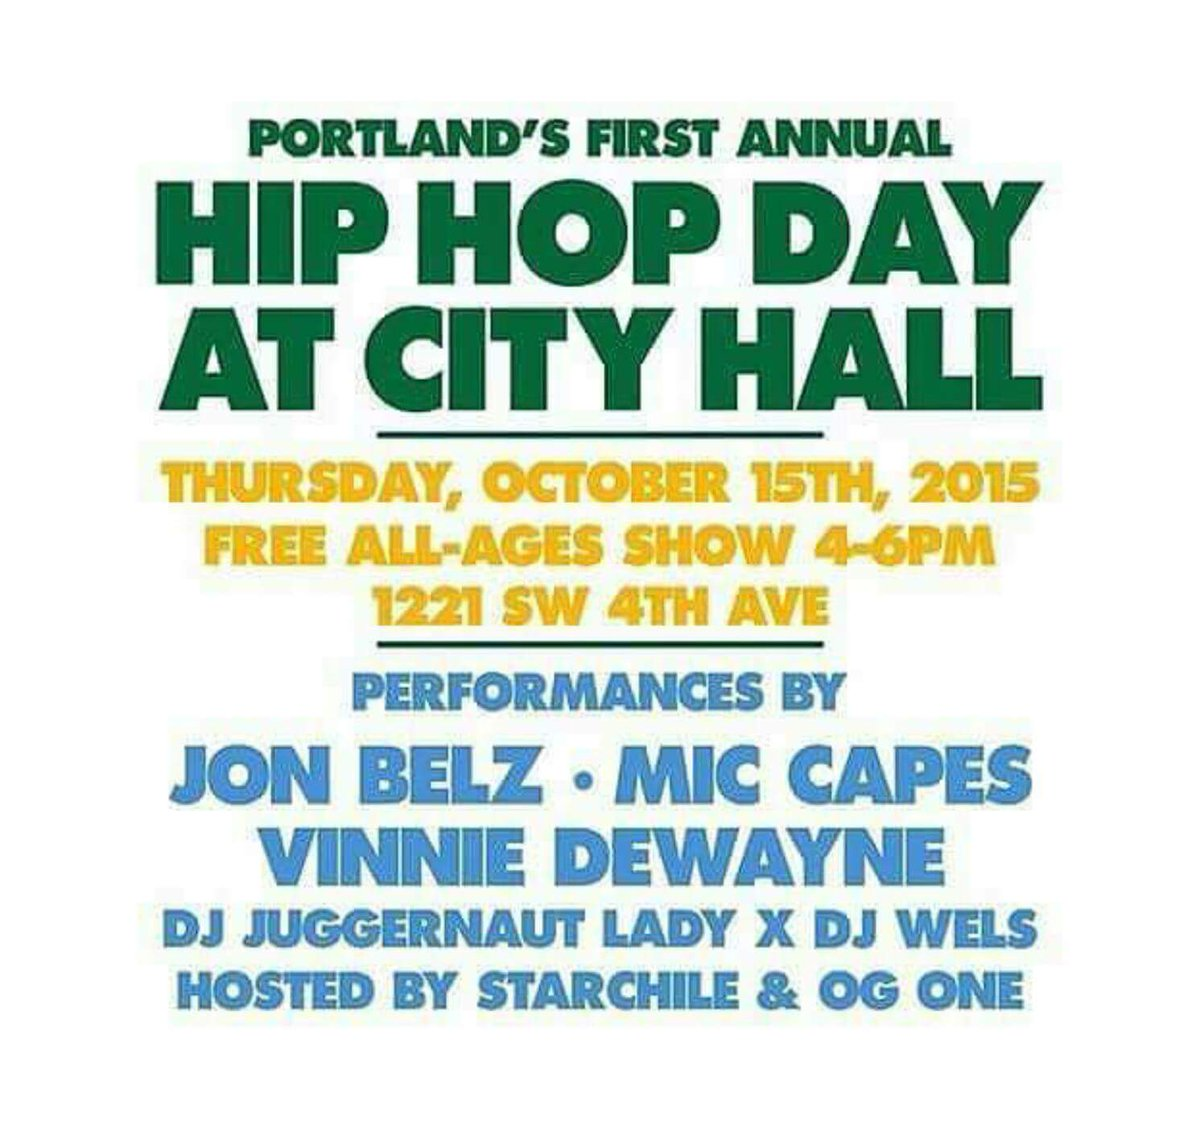 Today is the day, come show your support for HIP HOP! #PDXHipHopDay http://t.co/QvA57TpVRL